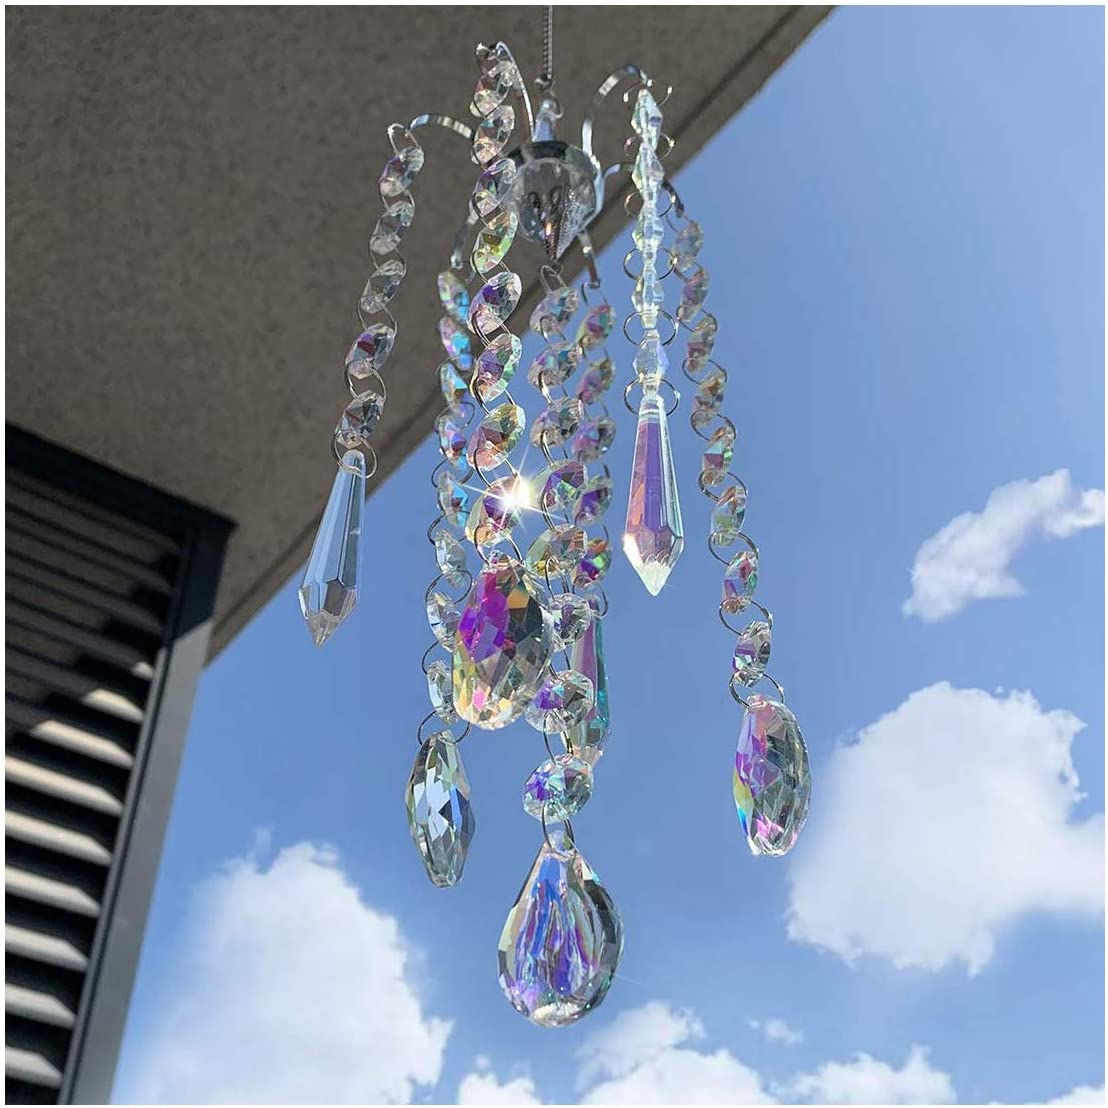 H&D HYALINE & DORA Chandelier Wind Chimes AB Coating Crystal Prisms Hanging Suncatcher Pendant Home Decor Gifts